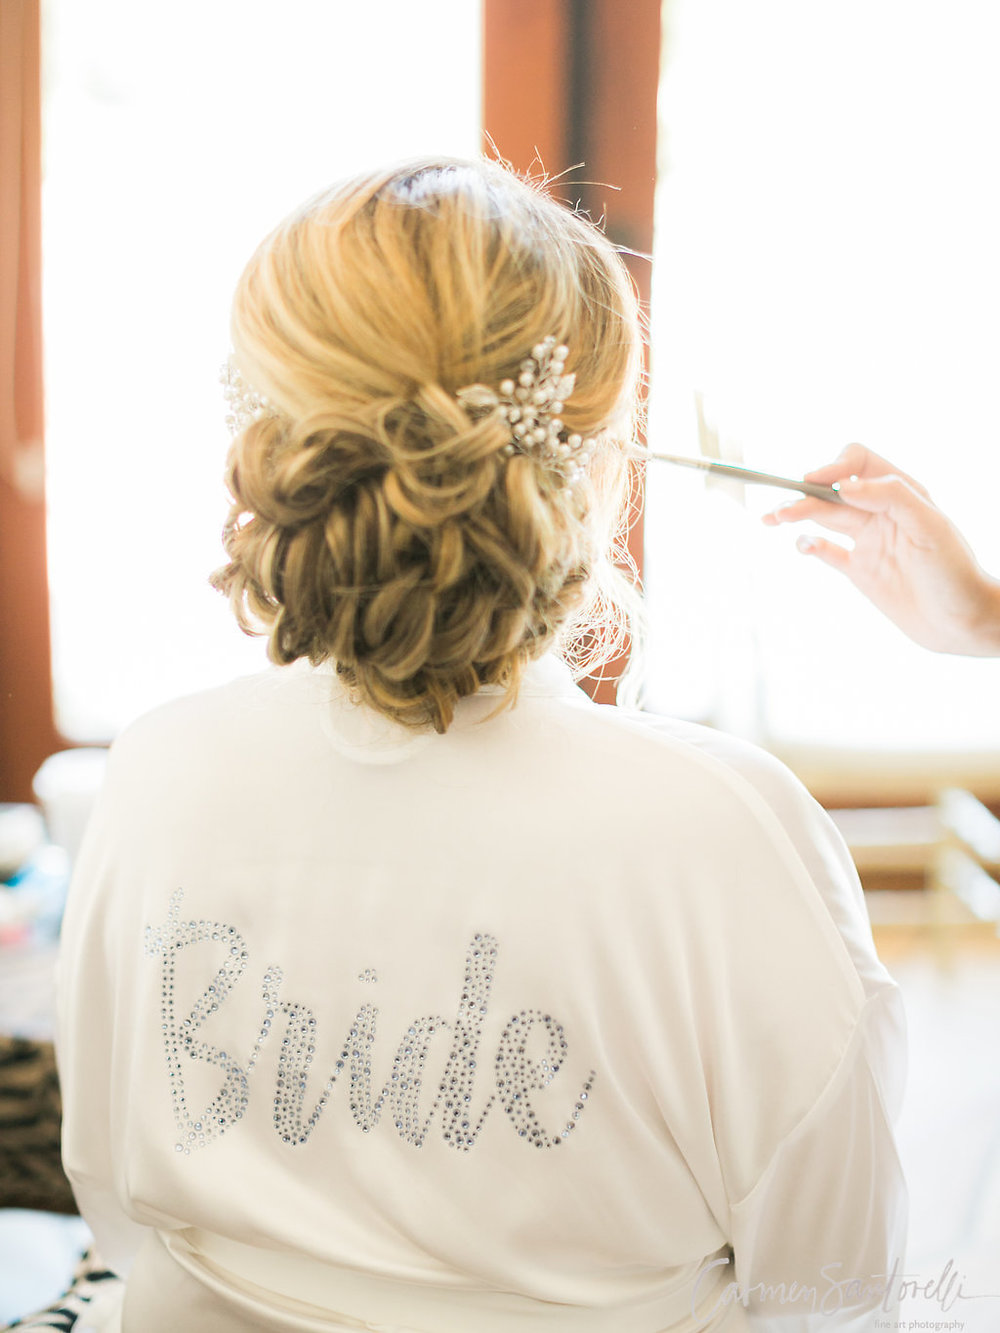 We are in love with this low, and a little to the side, textured bun. The textured twists give the up-do a more elaborate style, while accentuating the Brides balayage.Adding in a chic hairpiece gives the stle an extra dreamy, natural look.